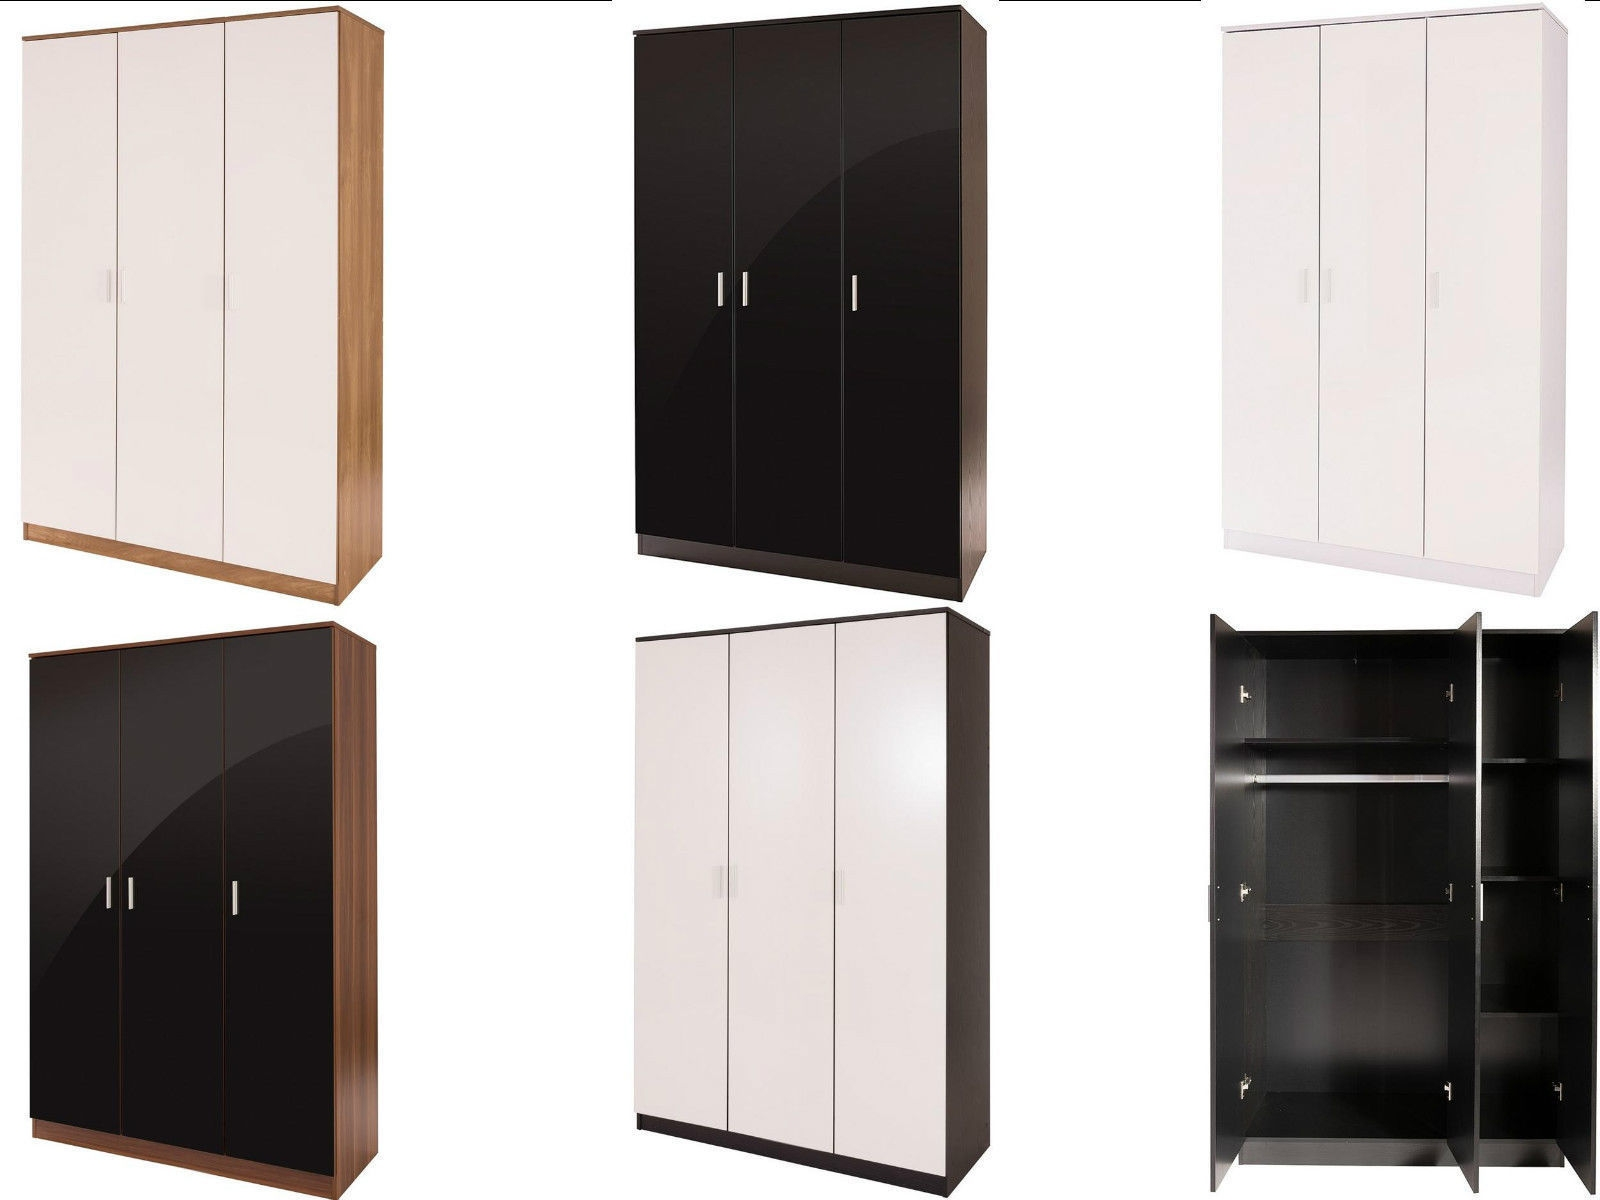 Caspian Supreme High Gloss 3 Door Wardrobes With Shelves Black Oak Pertaining To Wardrobes With Shelves (Image 6 of 15)